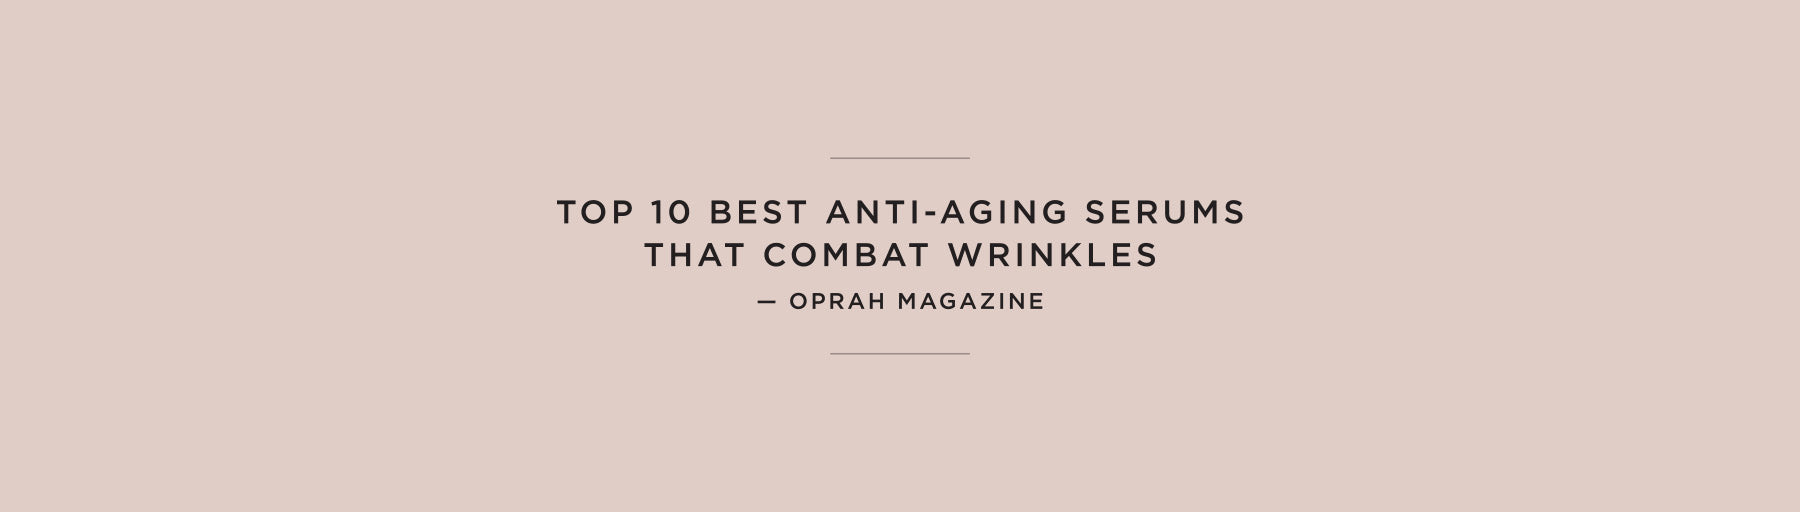 Top 10 best anti-aging serums that combat wrinkles, OPRAH MAGAZINE